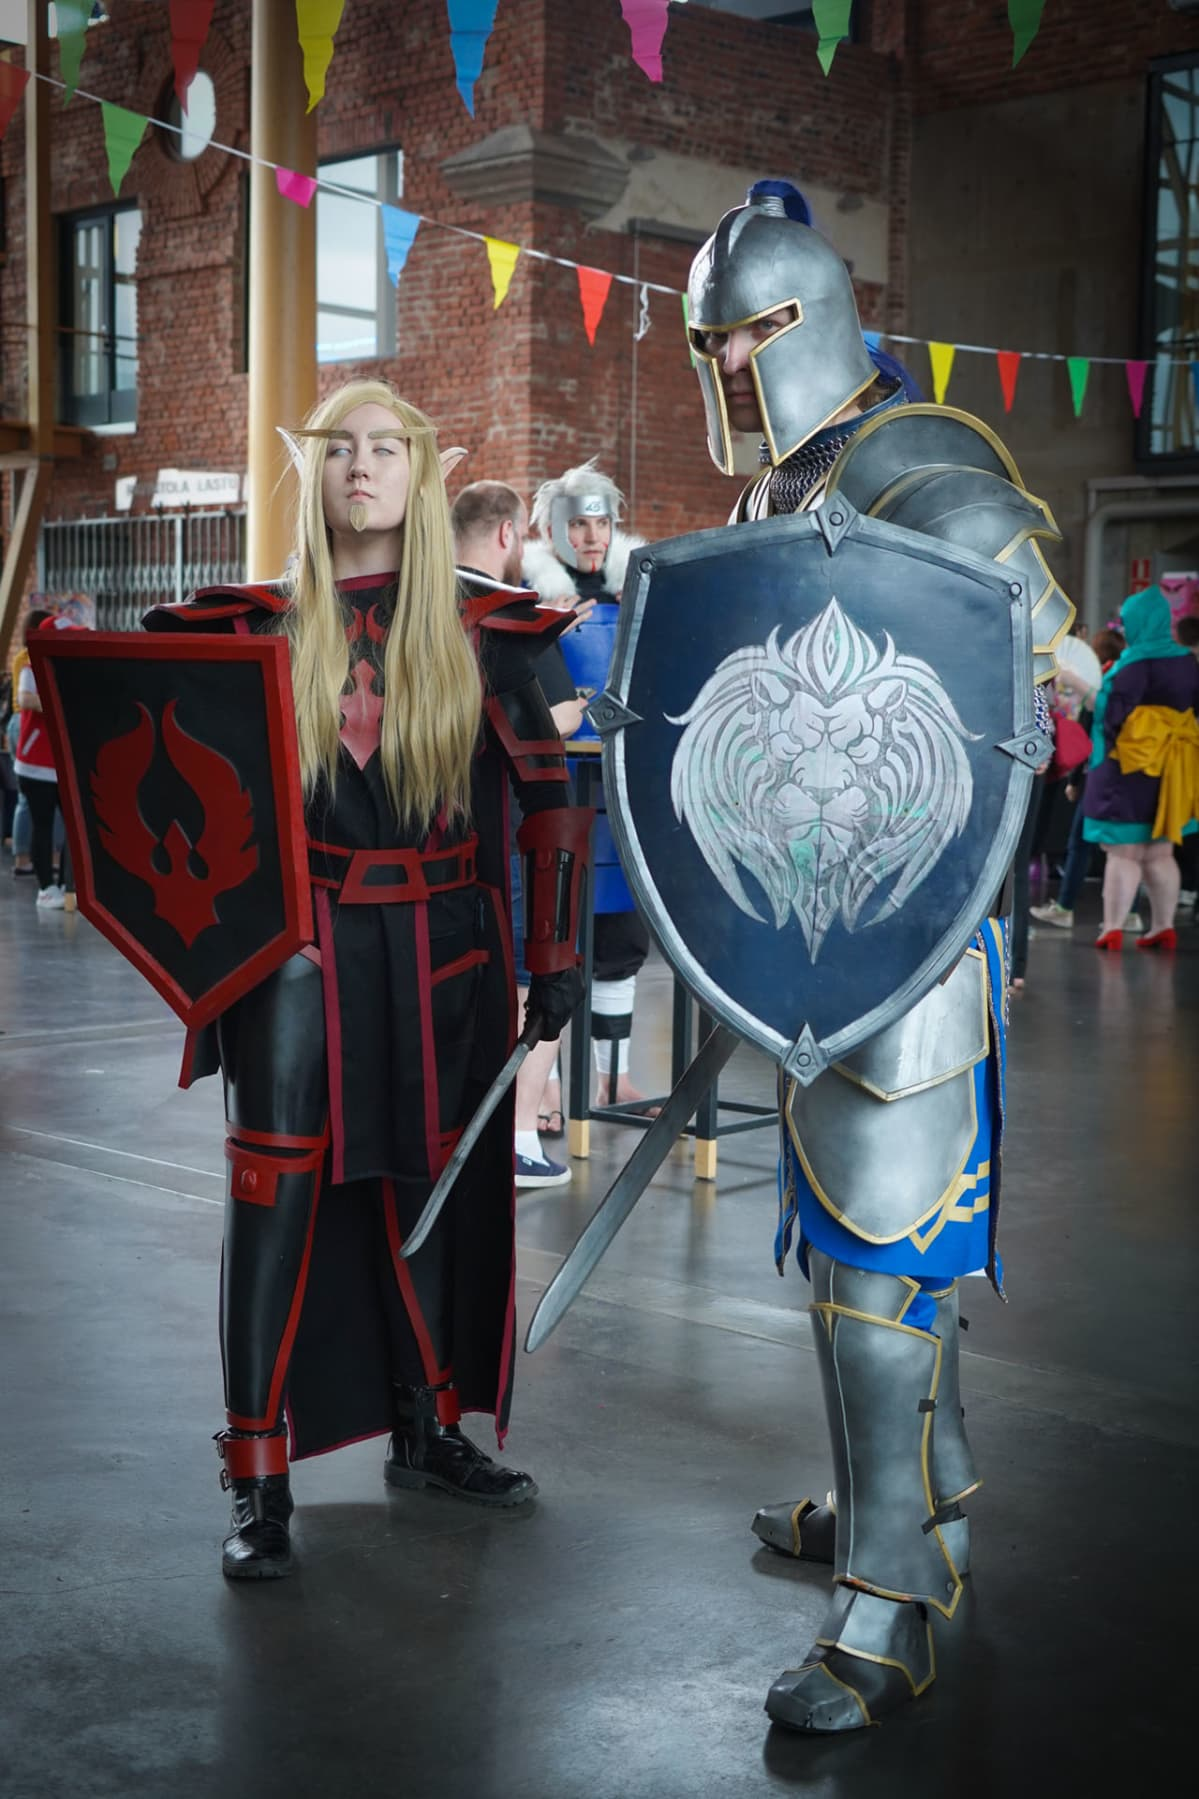 Desucon, cosplay, Eveliina Hillo, Santeri Mononen, Blood Knight, Stormwind Guard